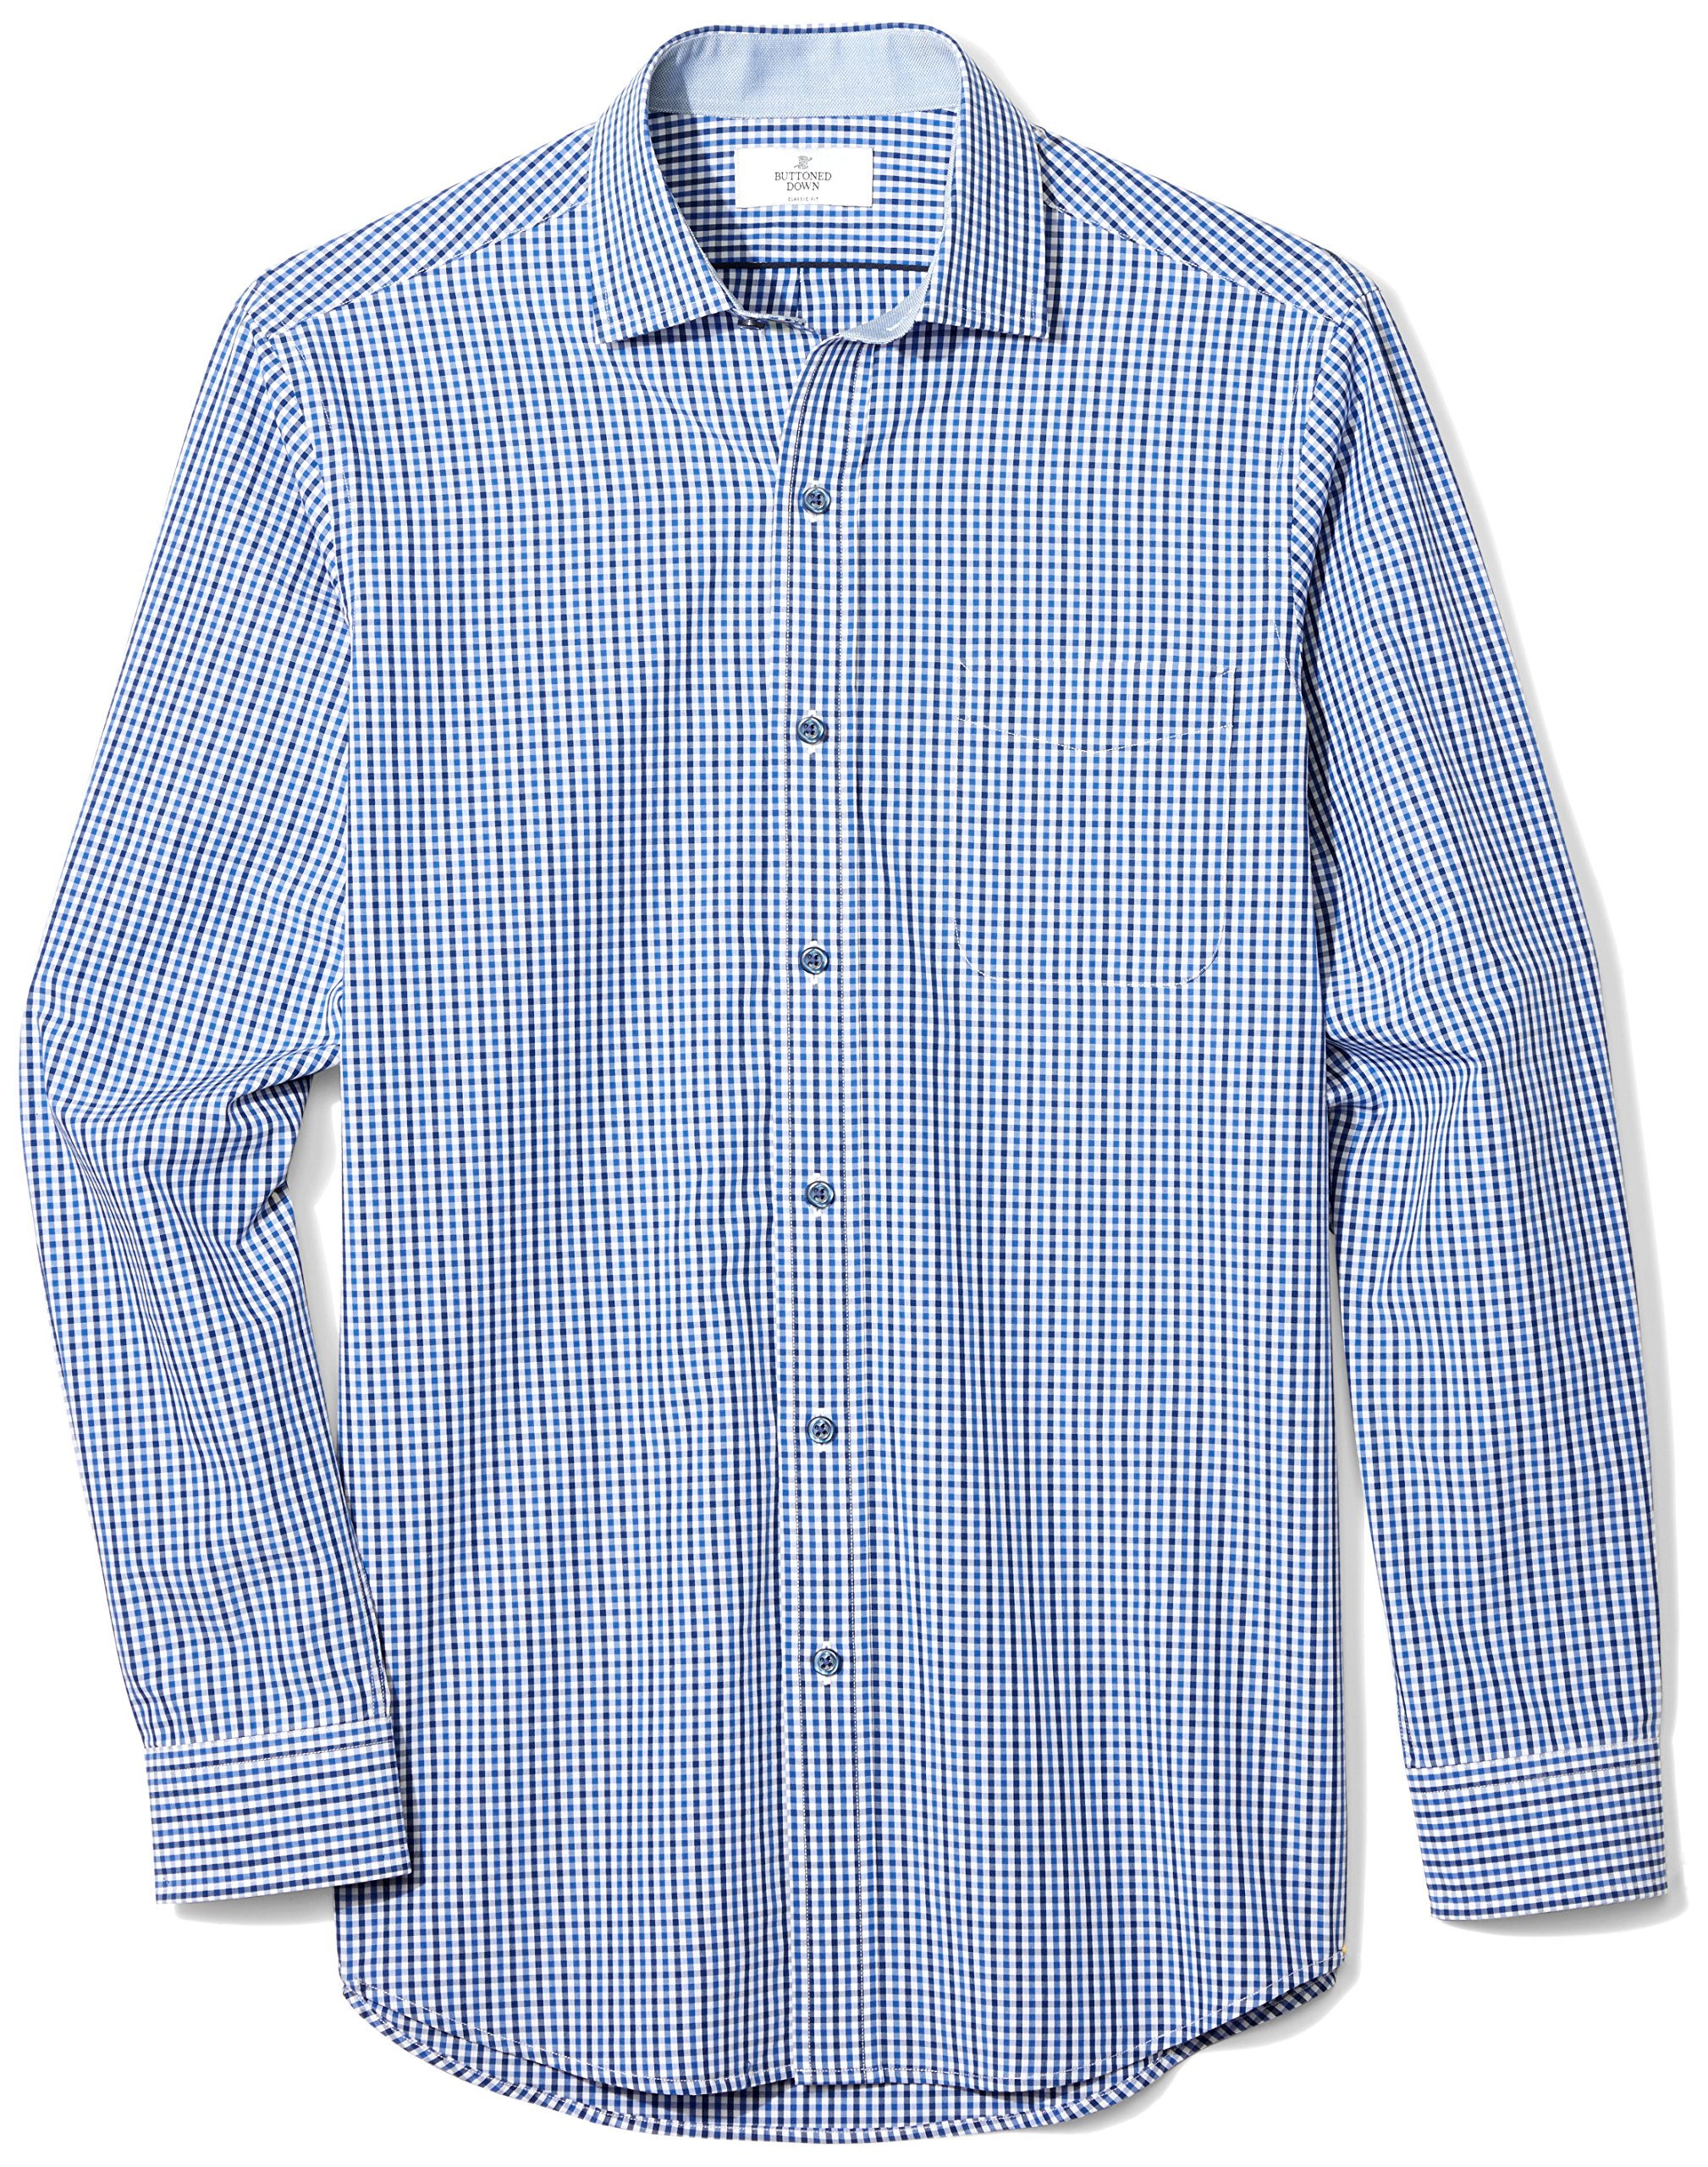 BUTTONED DOWN Men's Classic Fit Supima Cotton Spread-Collar Dress Casual Shirt, Navy/Blue Tatersol, XXX-Large 38/39 (Big and Tall)